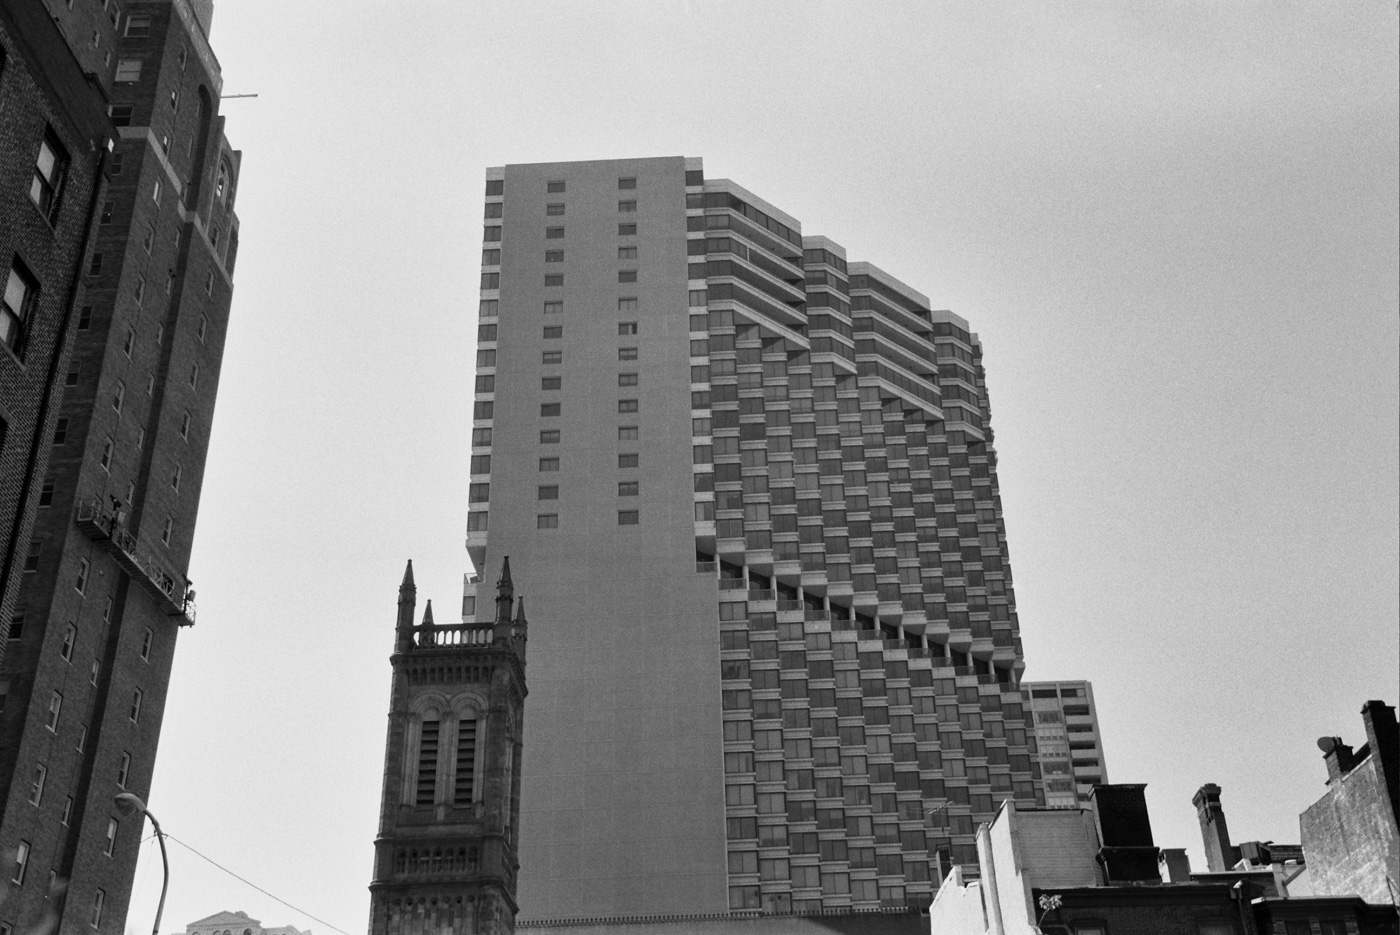 Church of the Holy Trinity and the Rittenhouse Hotel